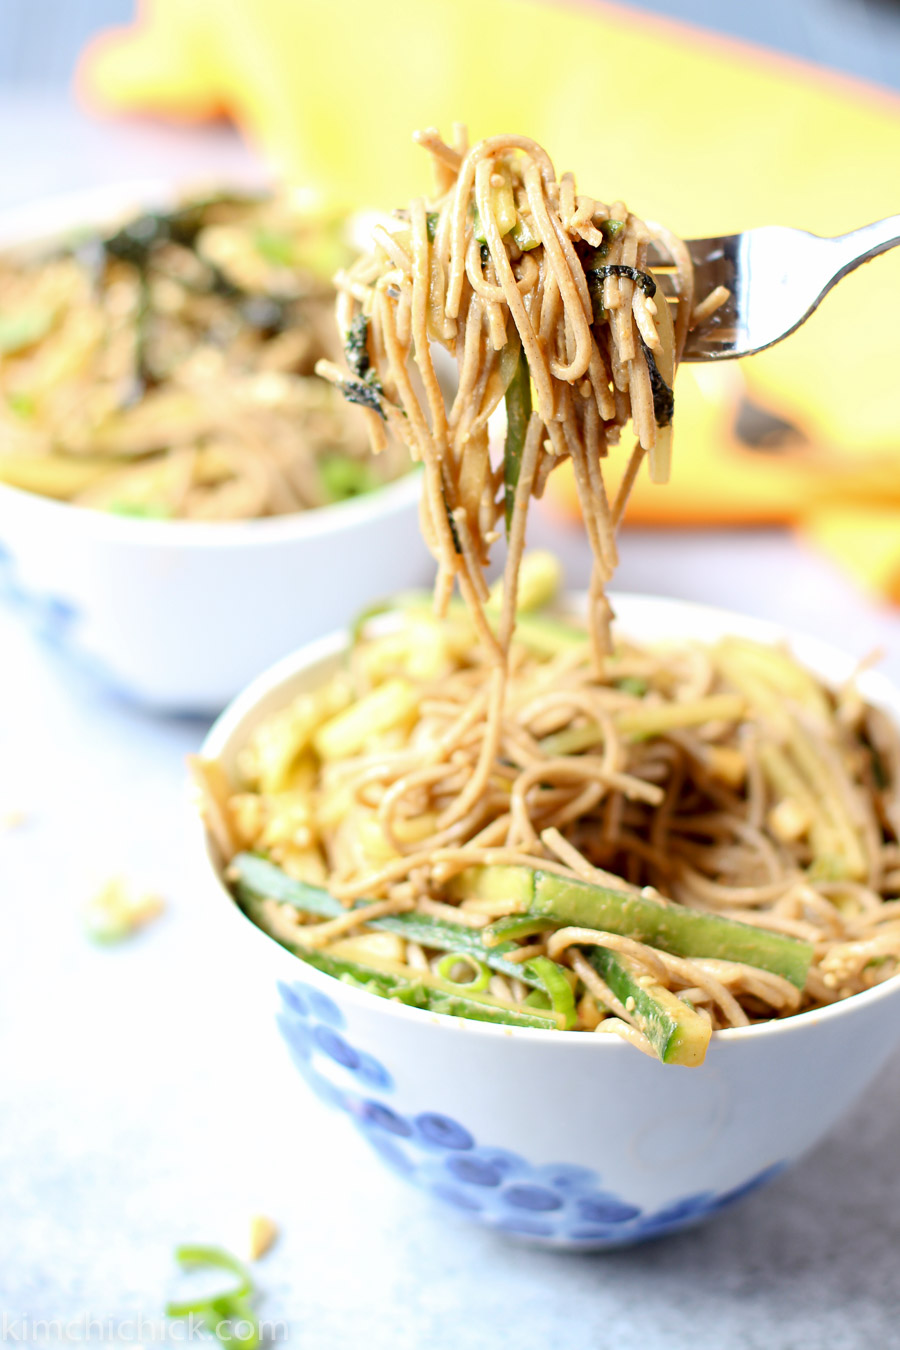 Super simple sesame soba noodles make a perfect healthy lunch, and it leaves you feeling lean and energized all day! Plus it only takes 15 minutes to make! |www.kimchichick.com